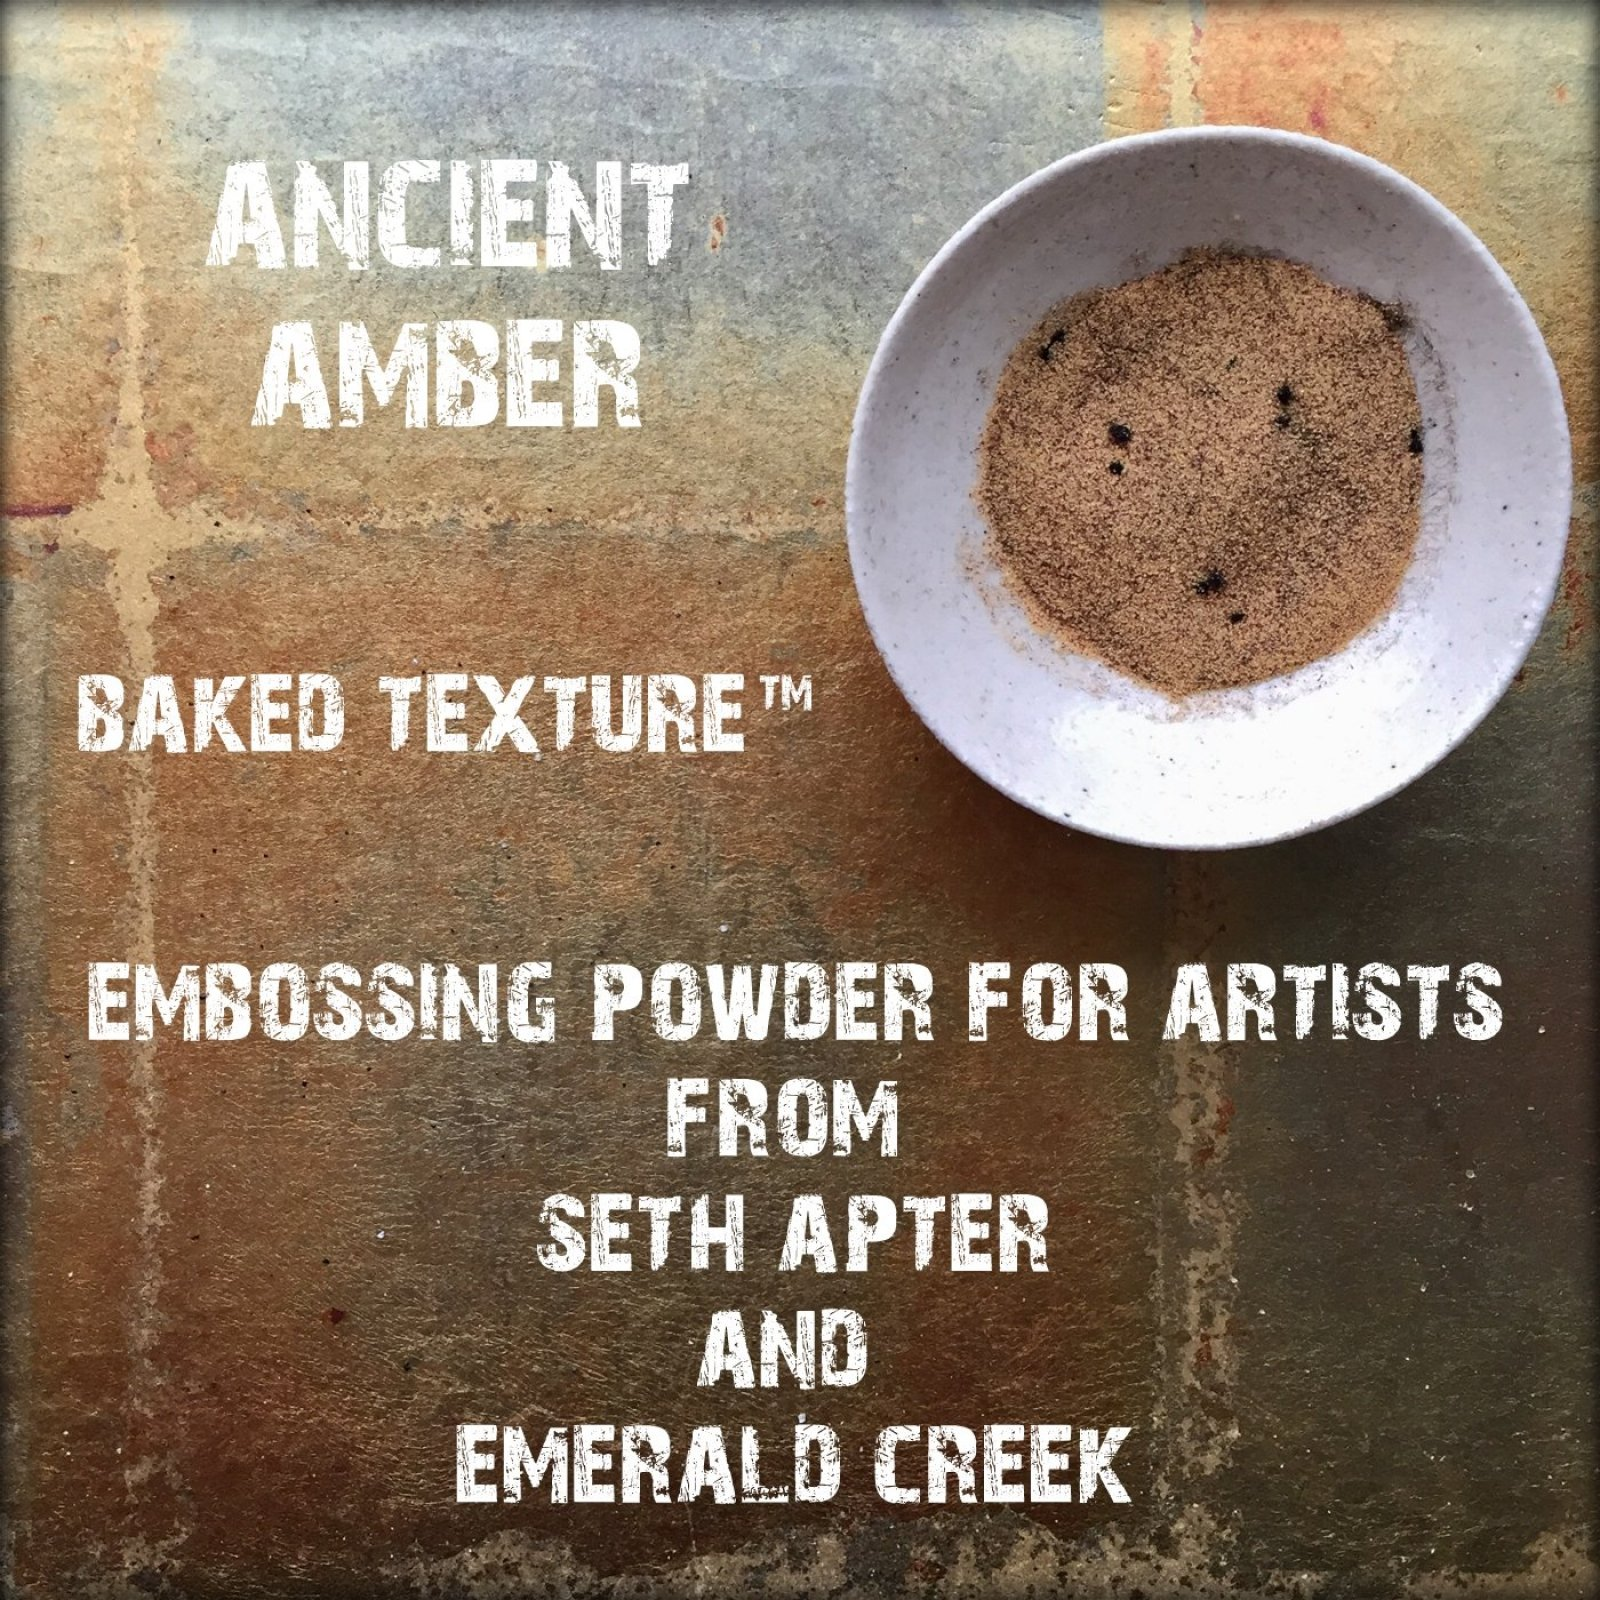 ANCIENT AMBER 17G - BAKED TEXTURE EMBOSSING POWDER